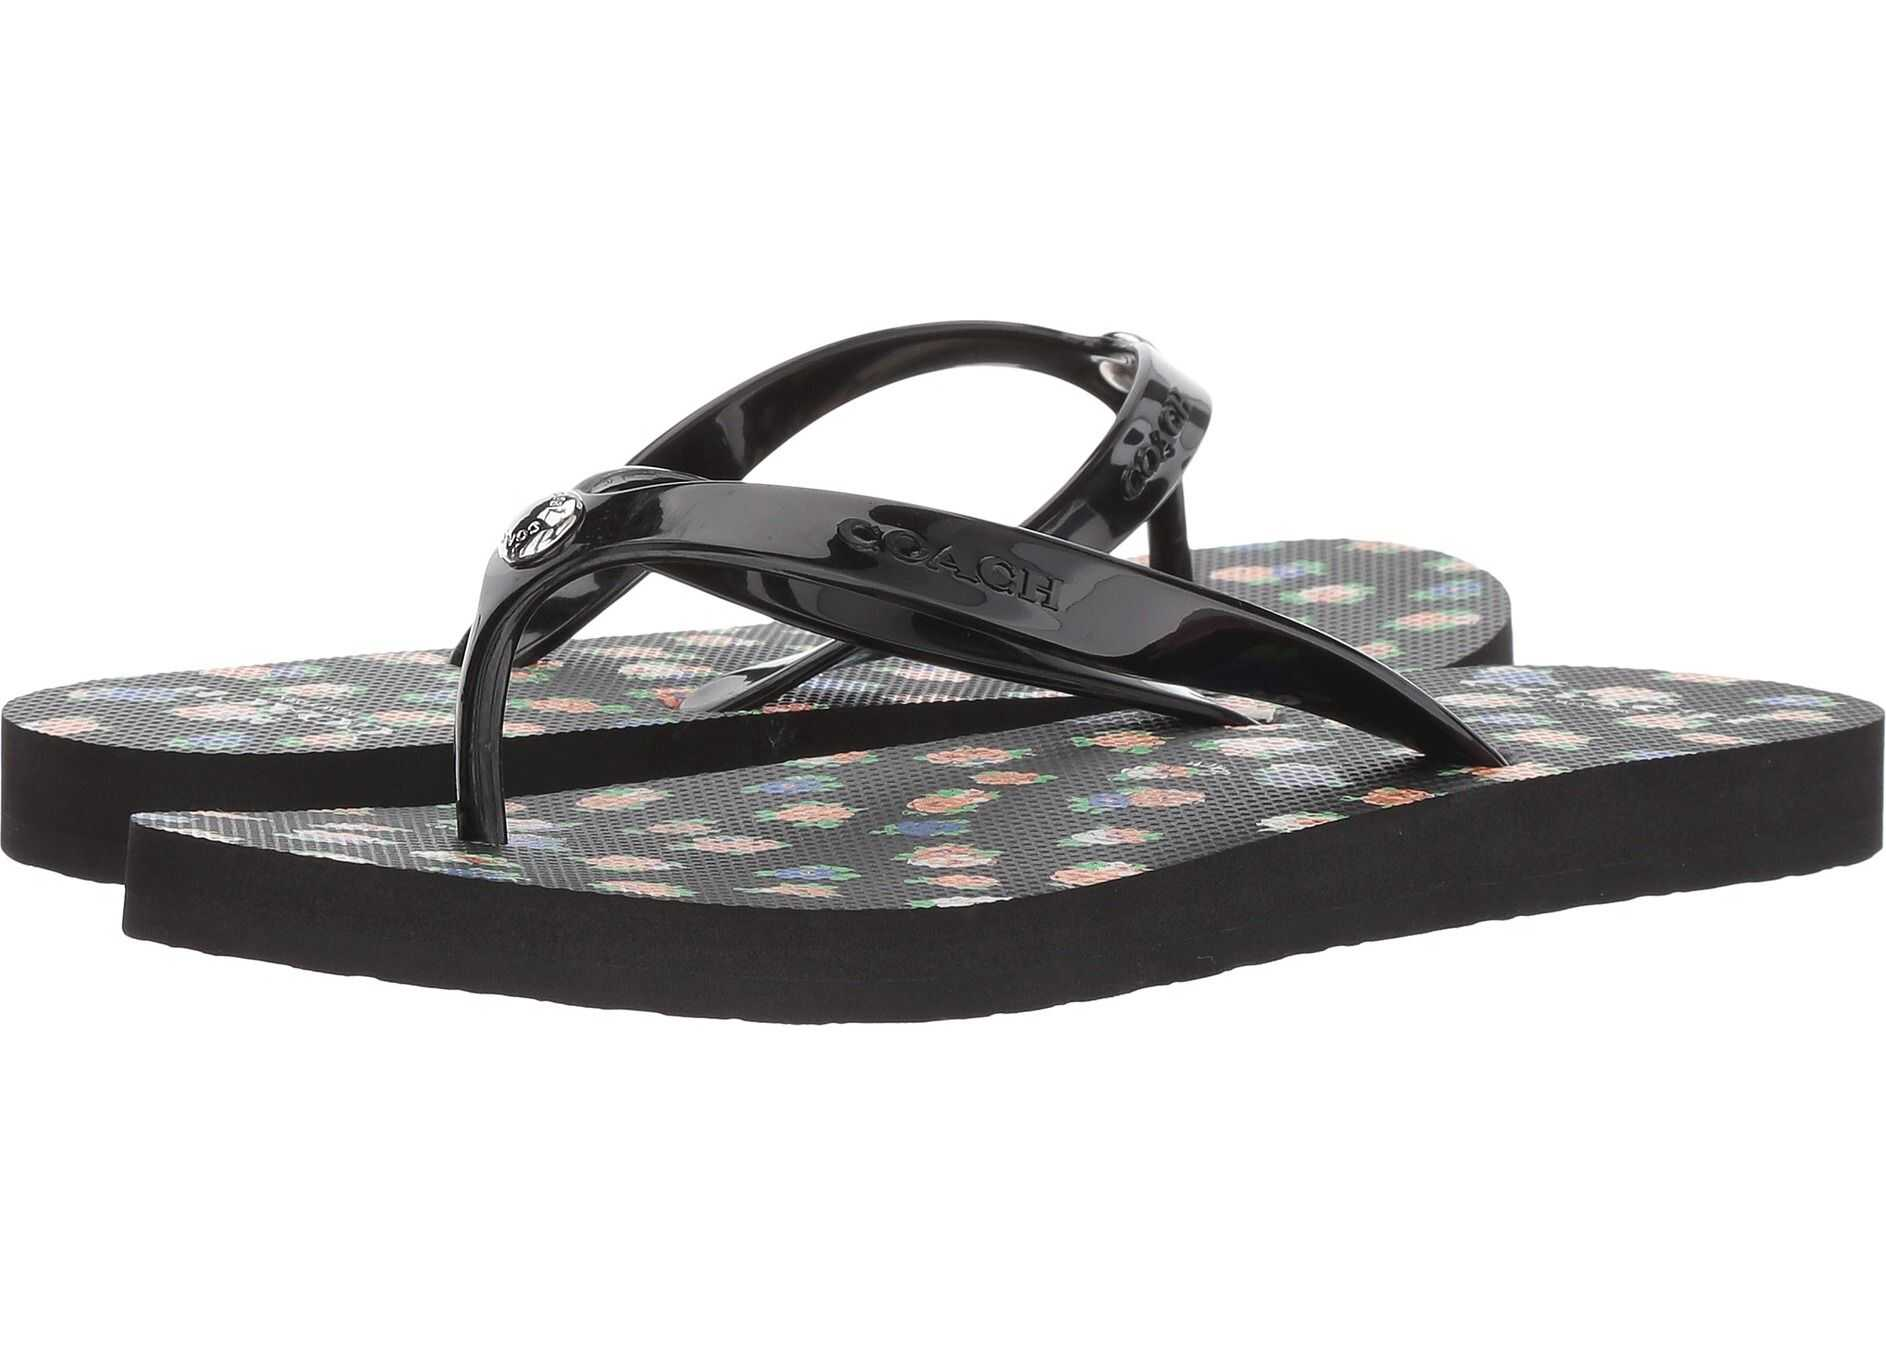 COACH Flip-Flop Black Multi Floral Rubber